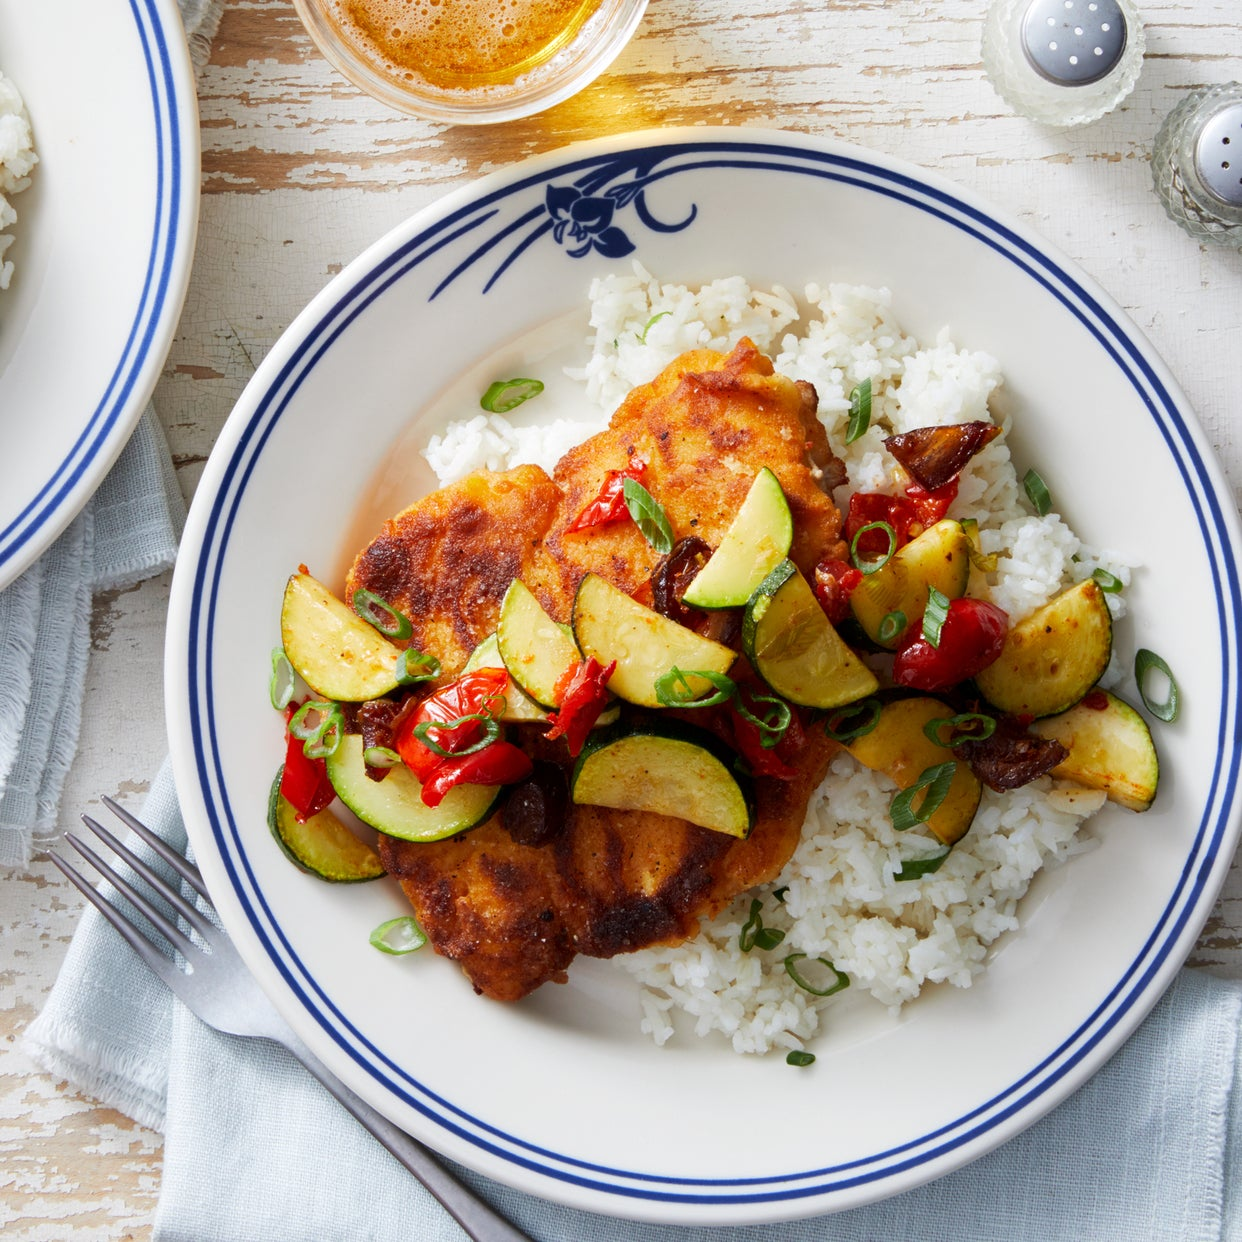 Pan-Fried Chicken Breast with Sweet & Tangy Zucchini